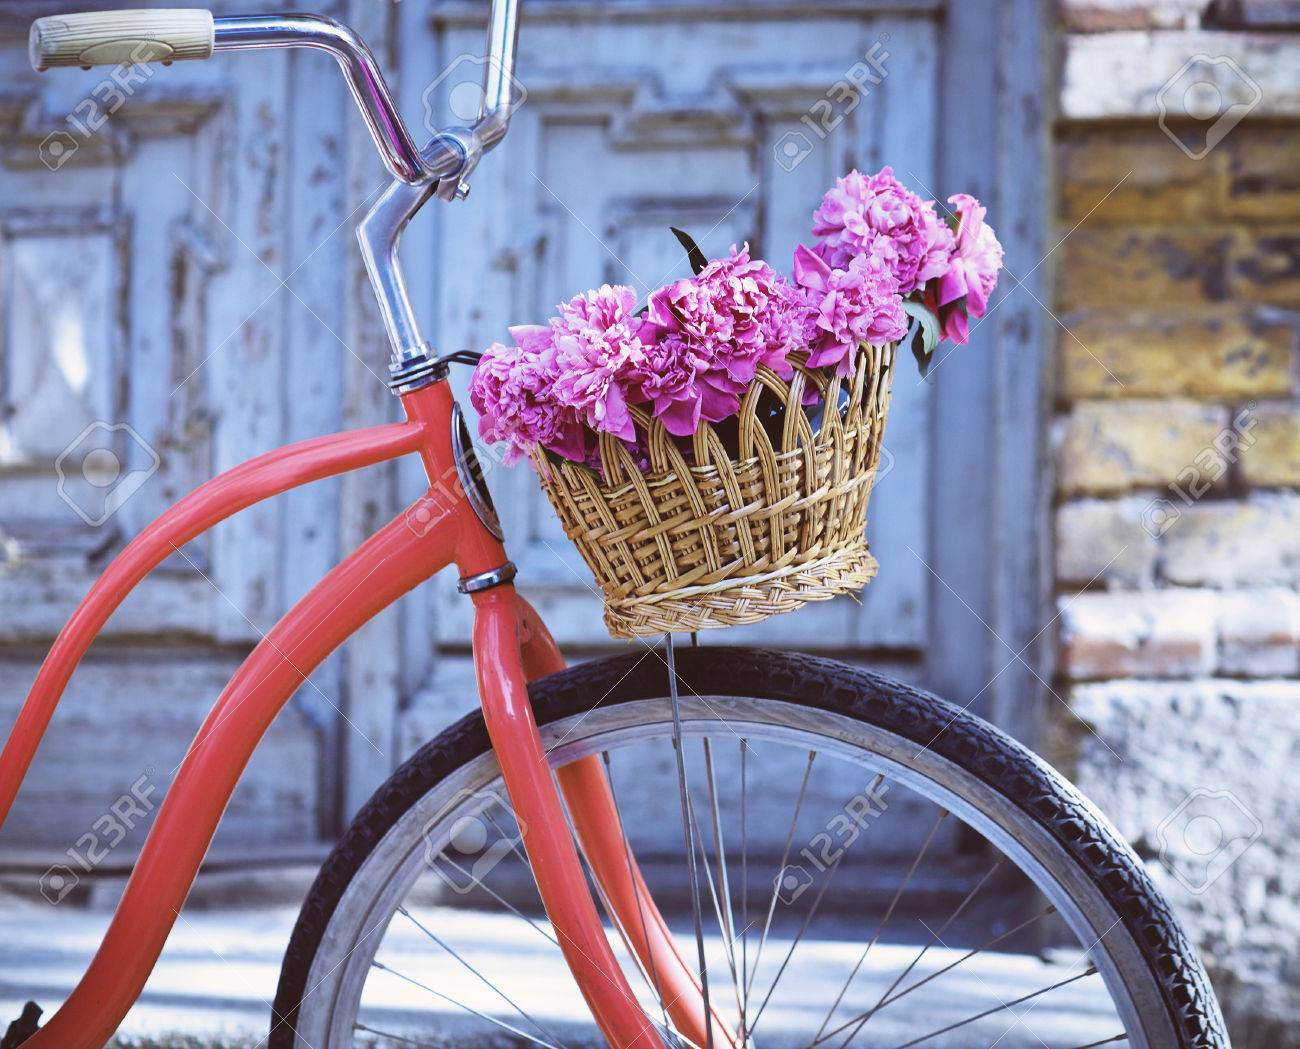 Vintage bicycle with basket with peony flowers near the old wooden door - 38833519